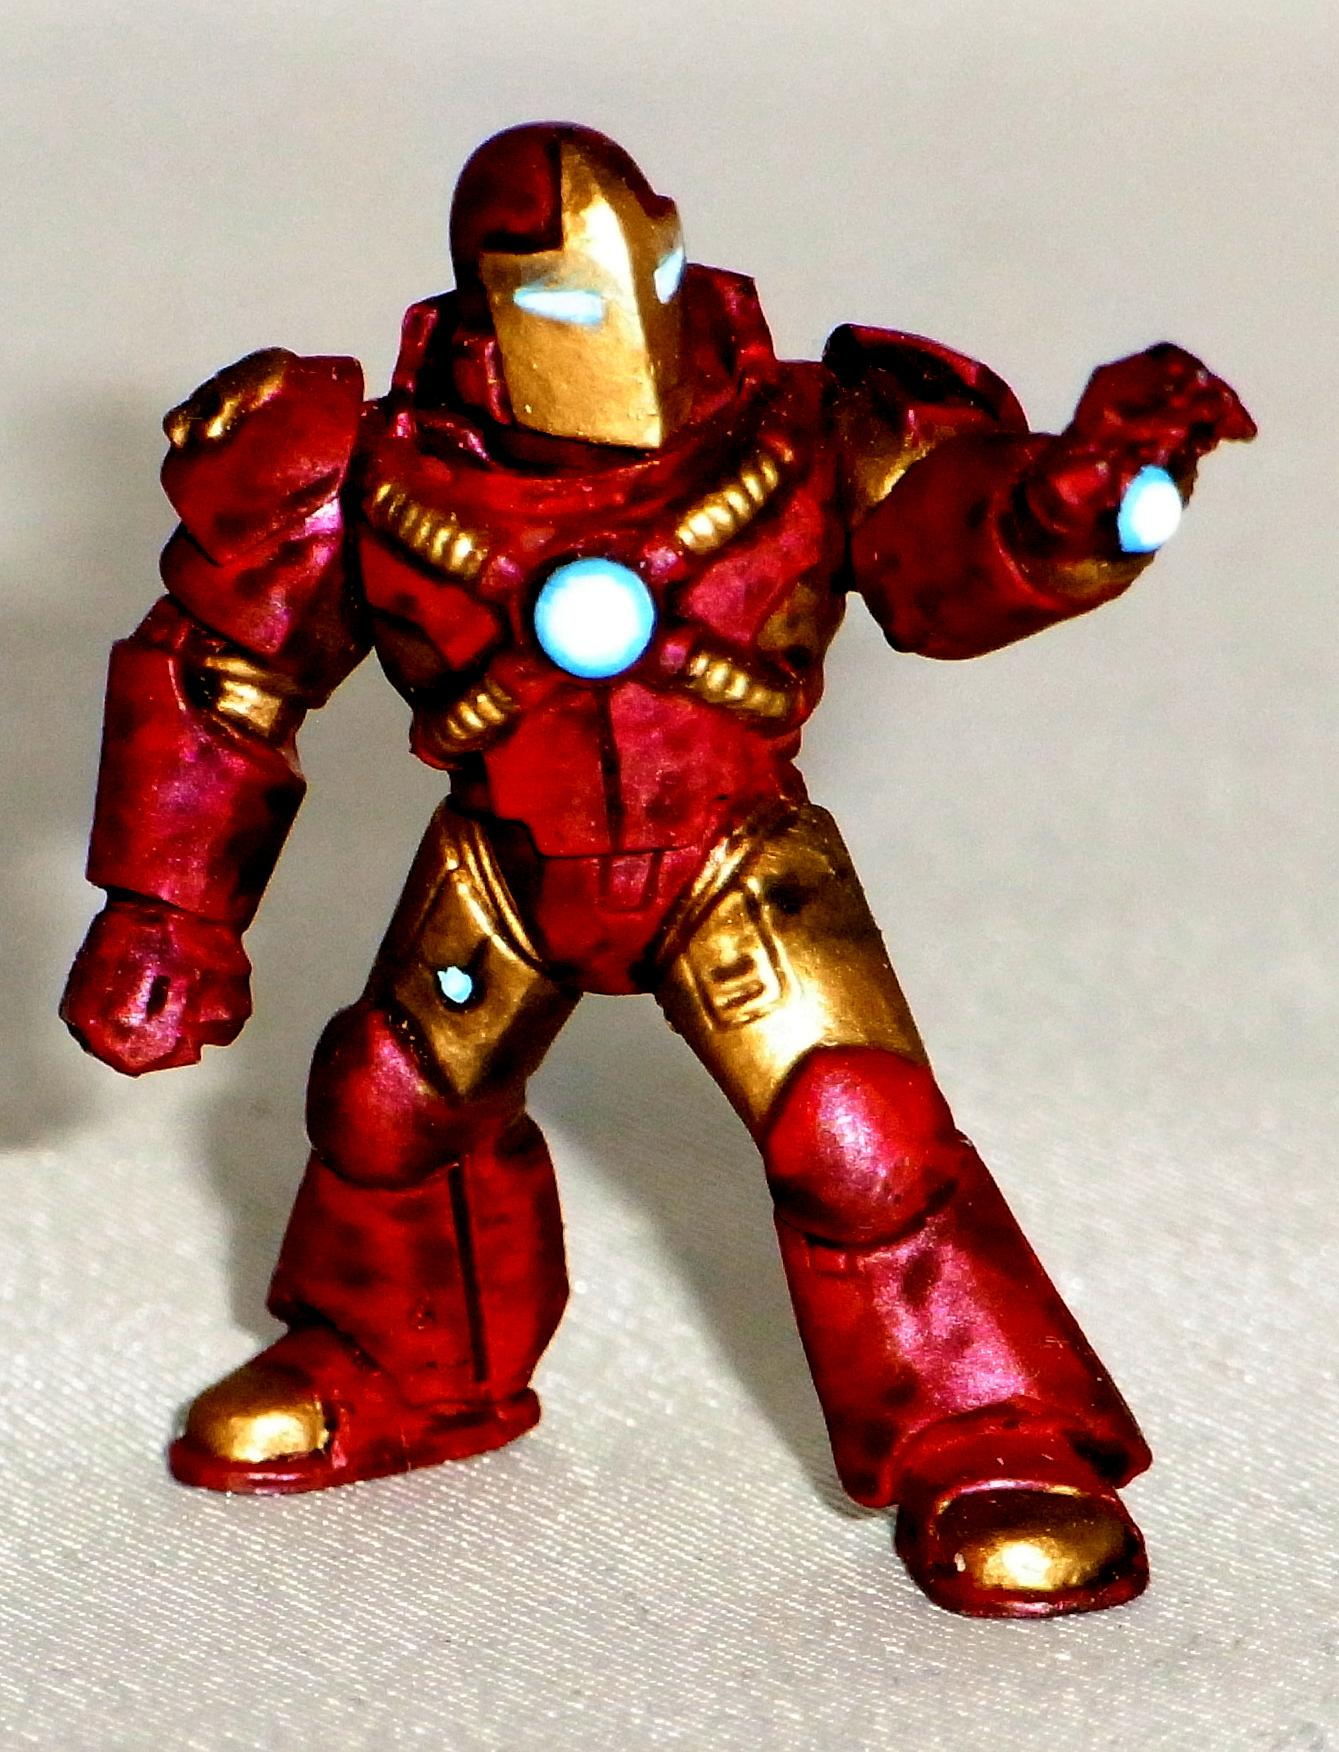 Iron, Iron Man, Ironman, Korebnn, Man, Marvel, Repulsor, Space, Space Marines, Stark, Superhero, Tony